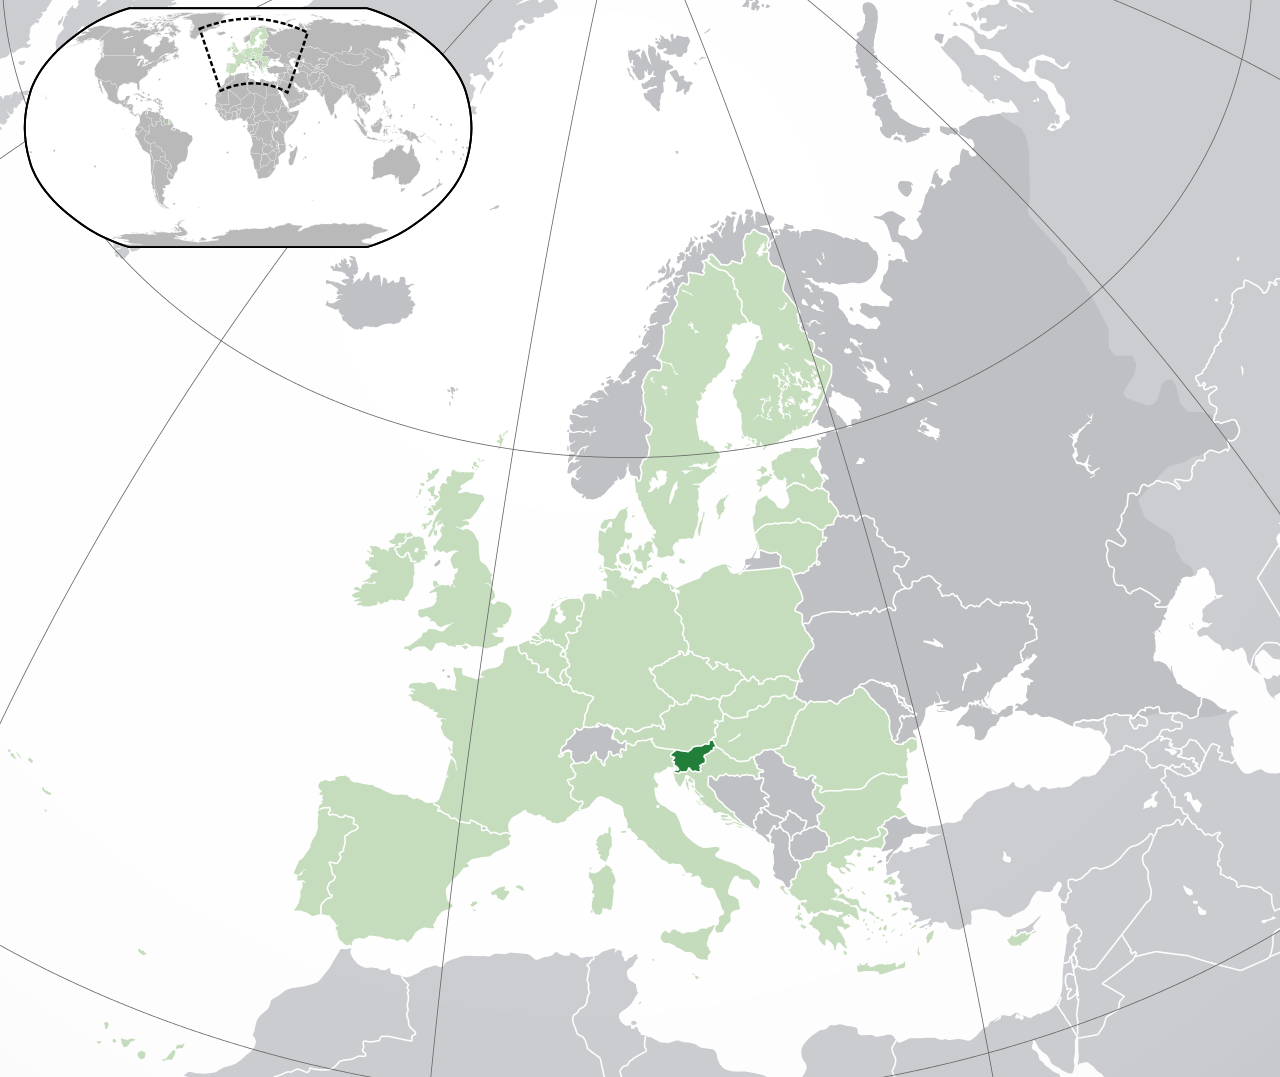 Location of Slovenia - it's situated in Central Europe